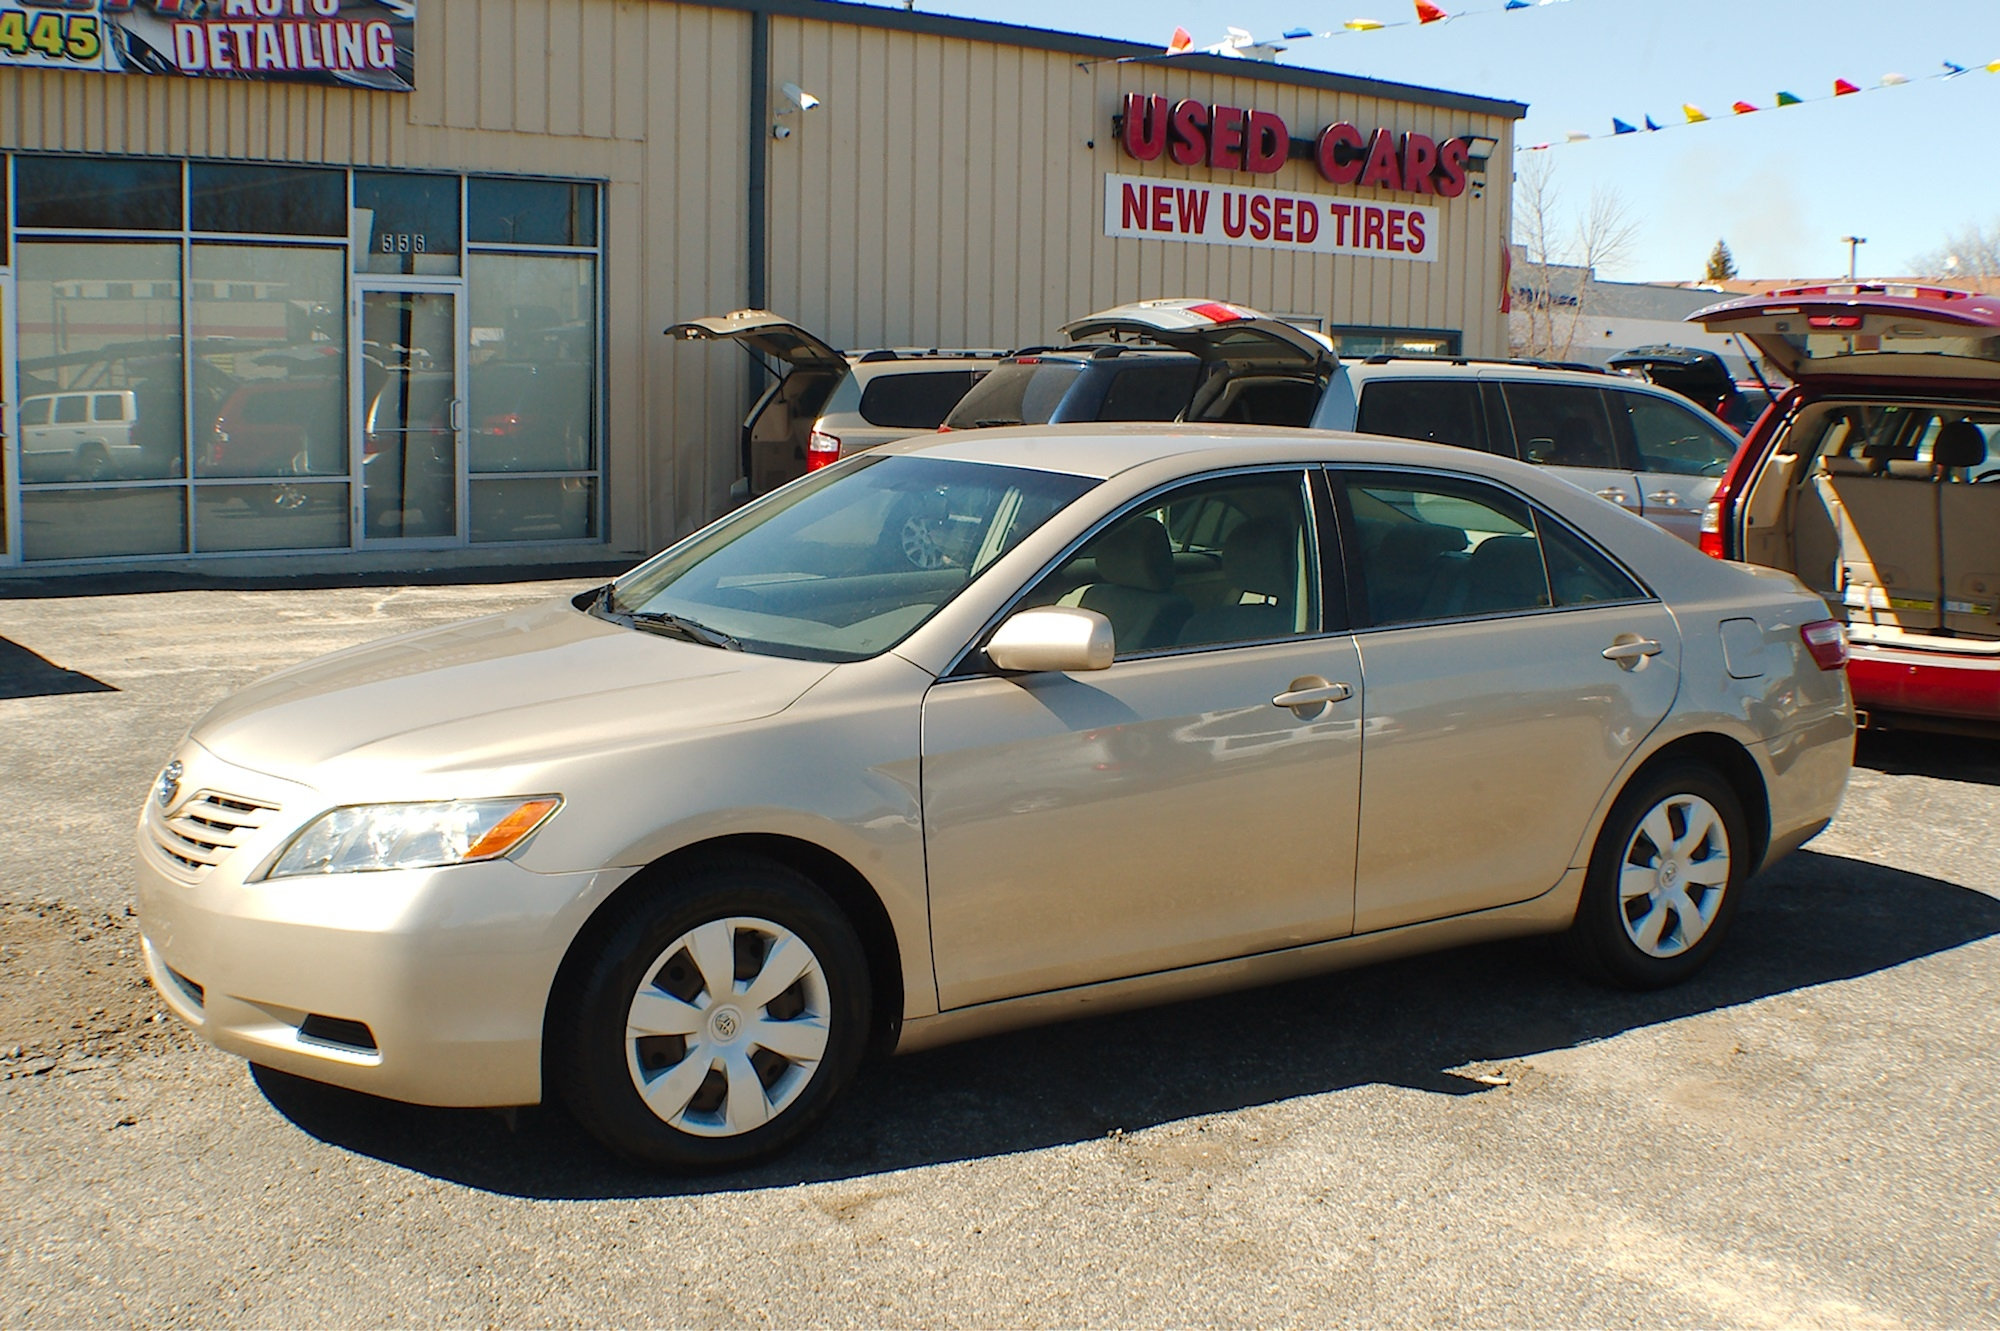 2007 Toyota Camry LE Beige Sedan Used Car Sale Antioch Zion Waukegan Lake County Illinois